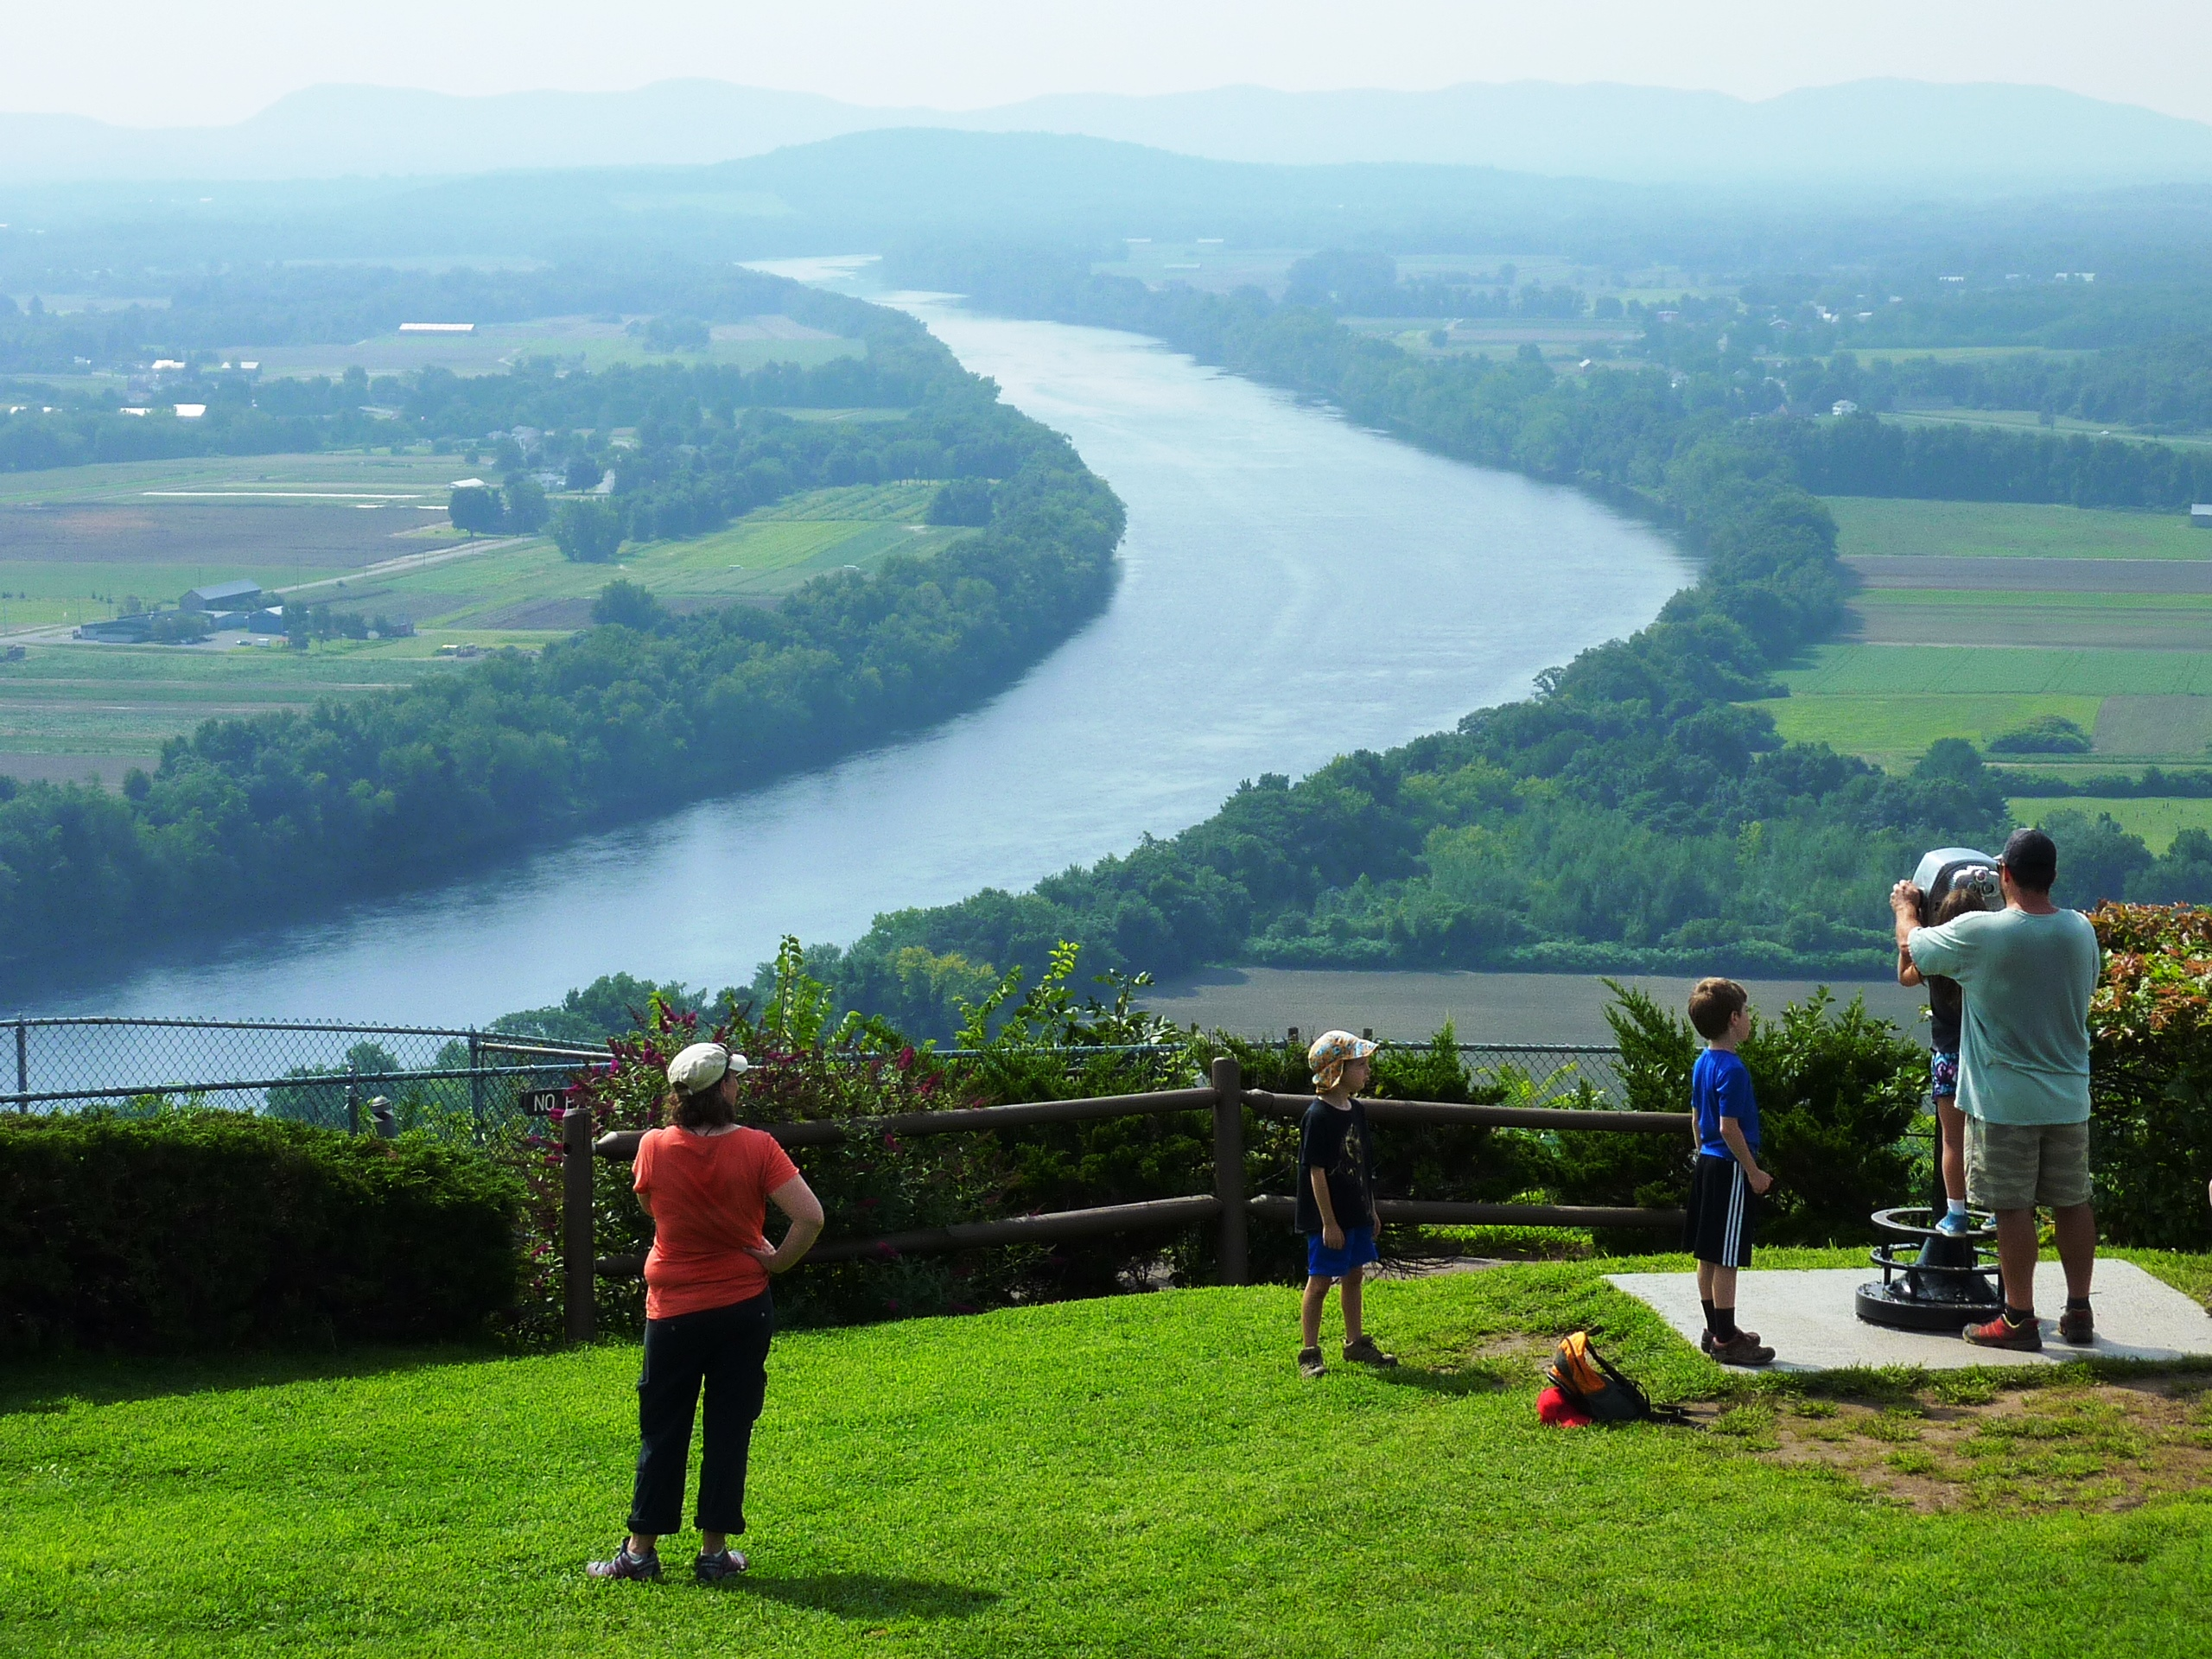 View of the Connecticut River Valley from Mt. Sugarloaf State Reservation in South Deerfield, Massachusetts.